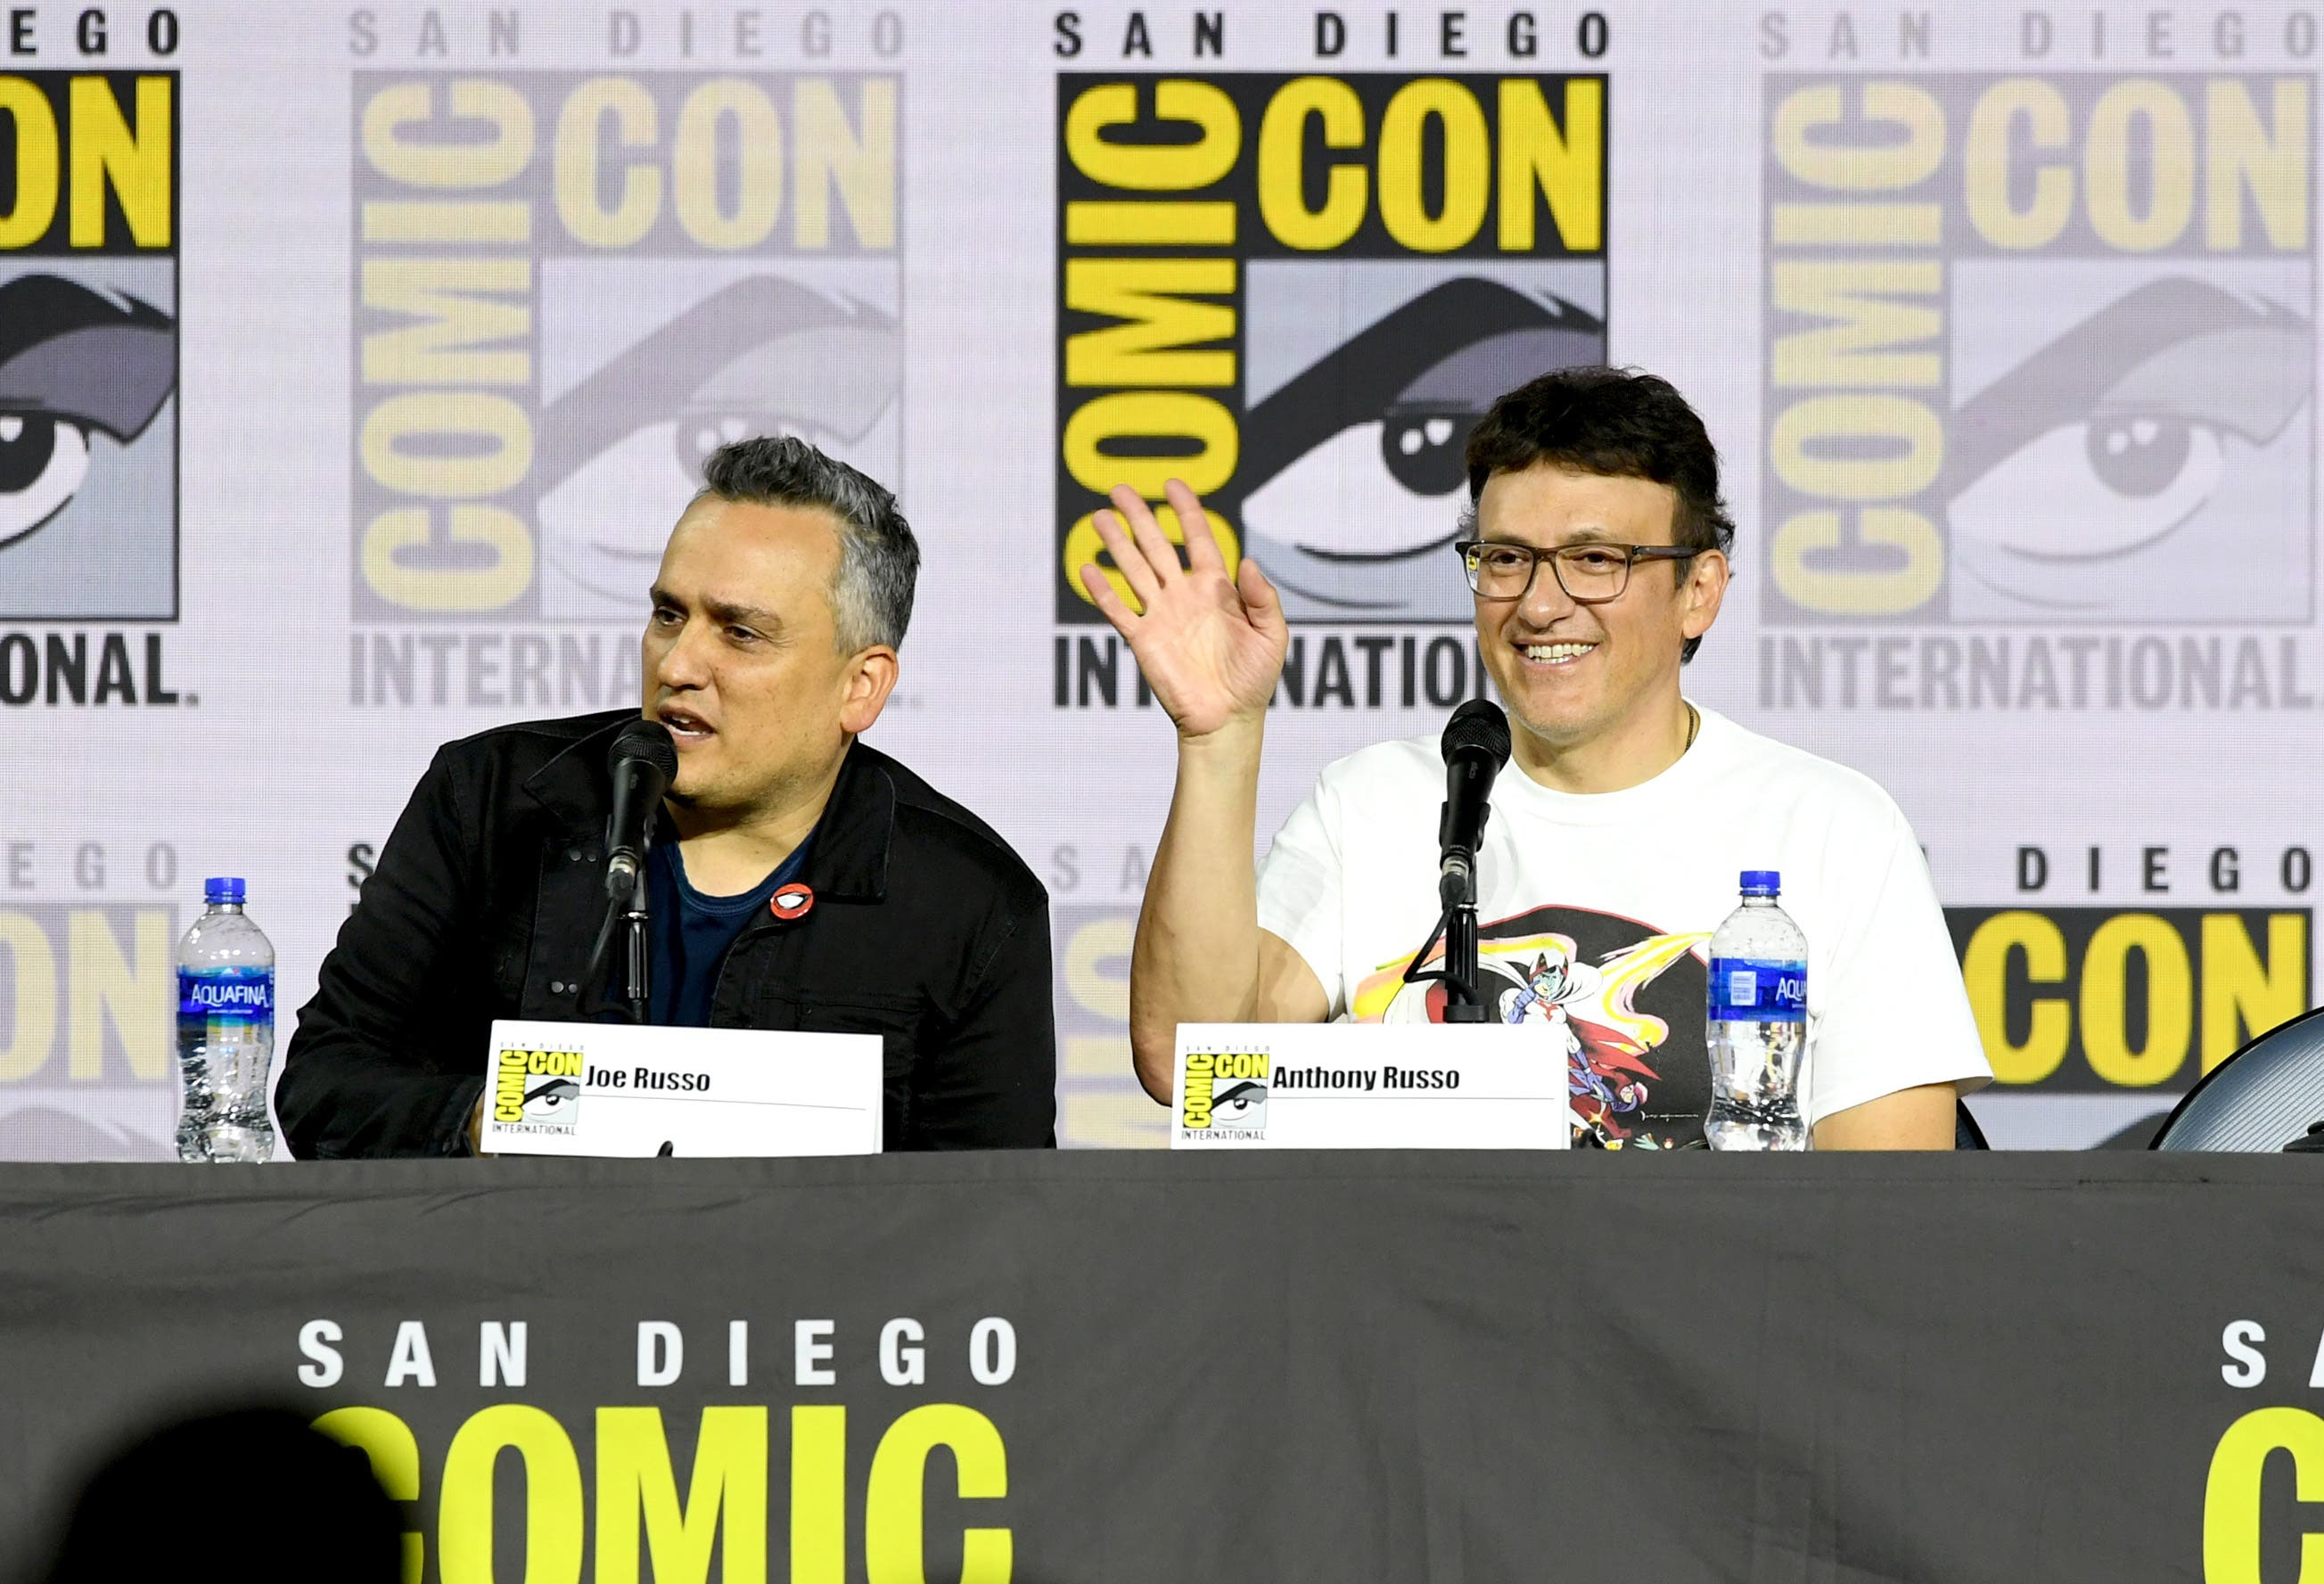 San Diego Comic-Con 2019: The Avengers' Big Surprise And